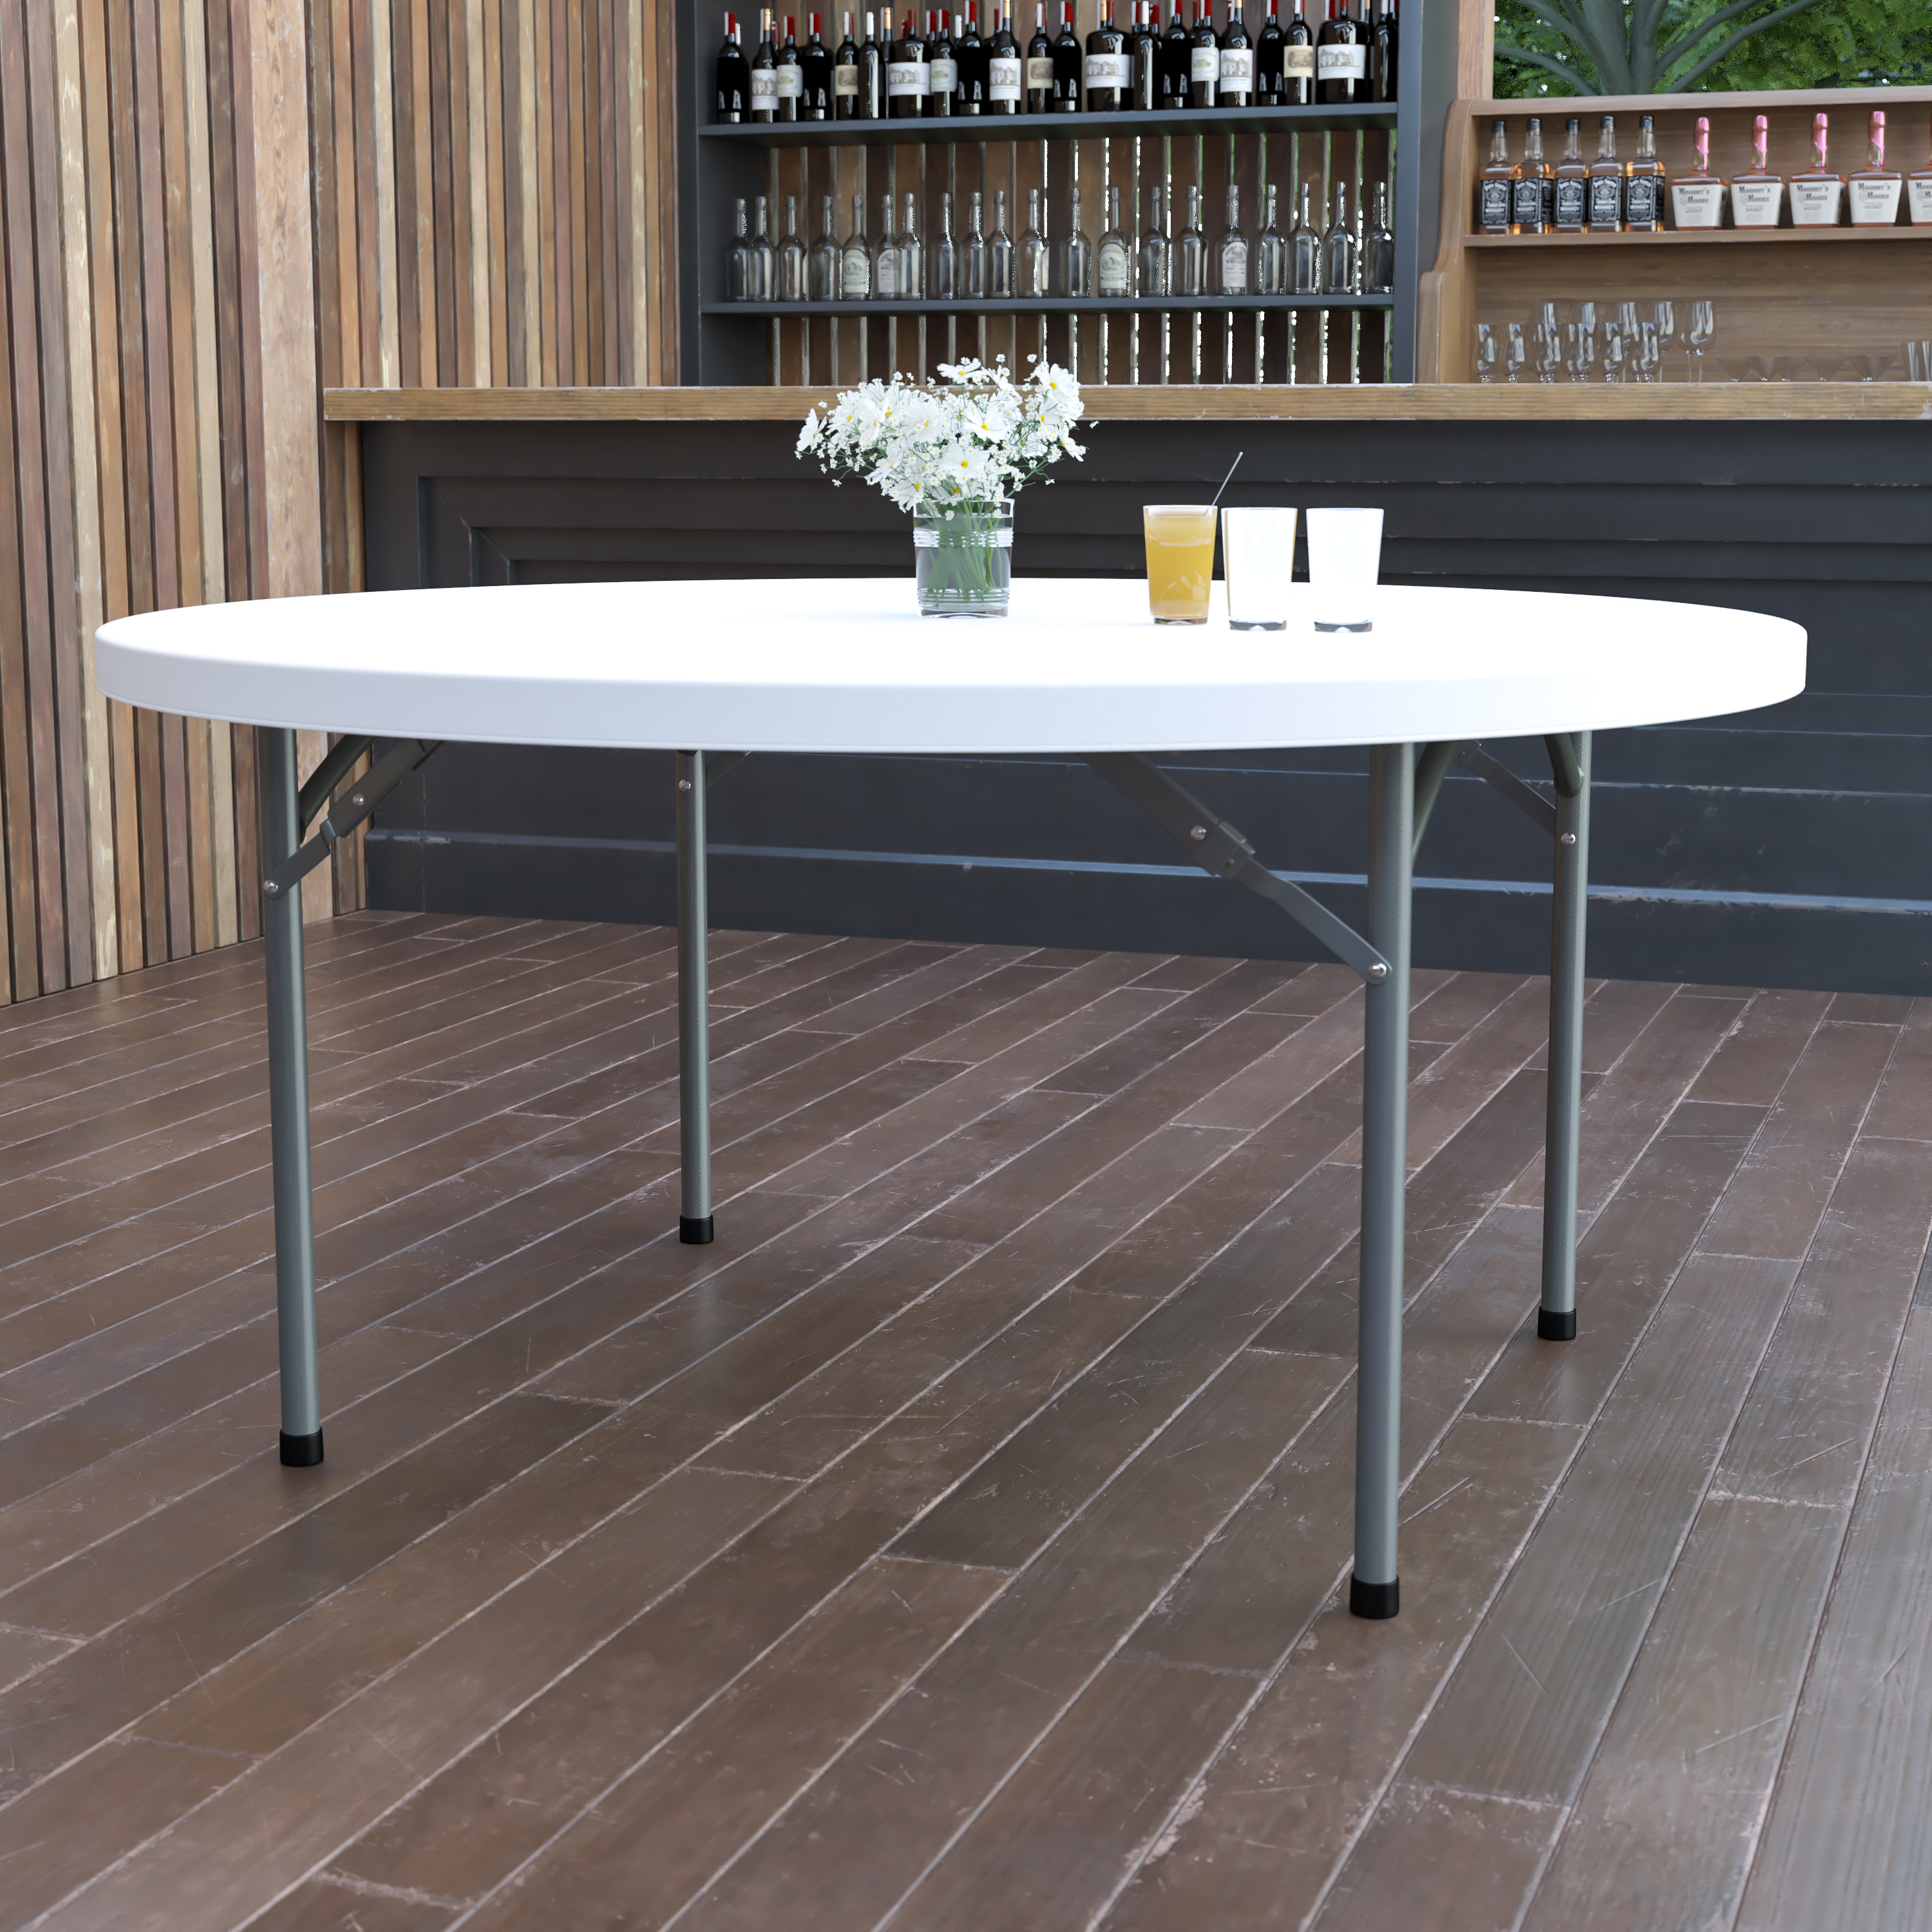 4.97-Foot Round Granite White Plastic Folding Table